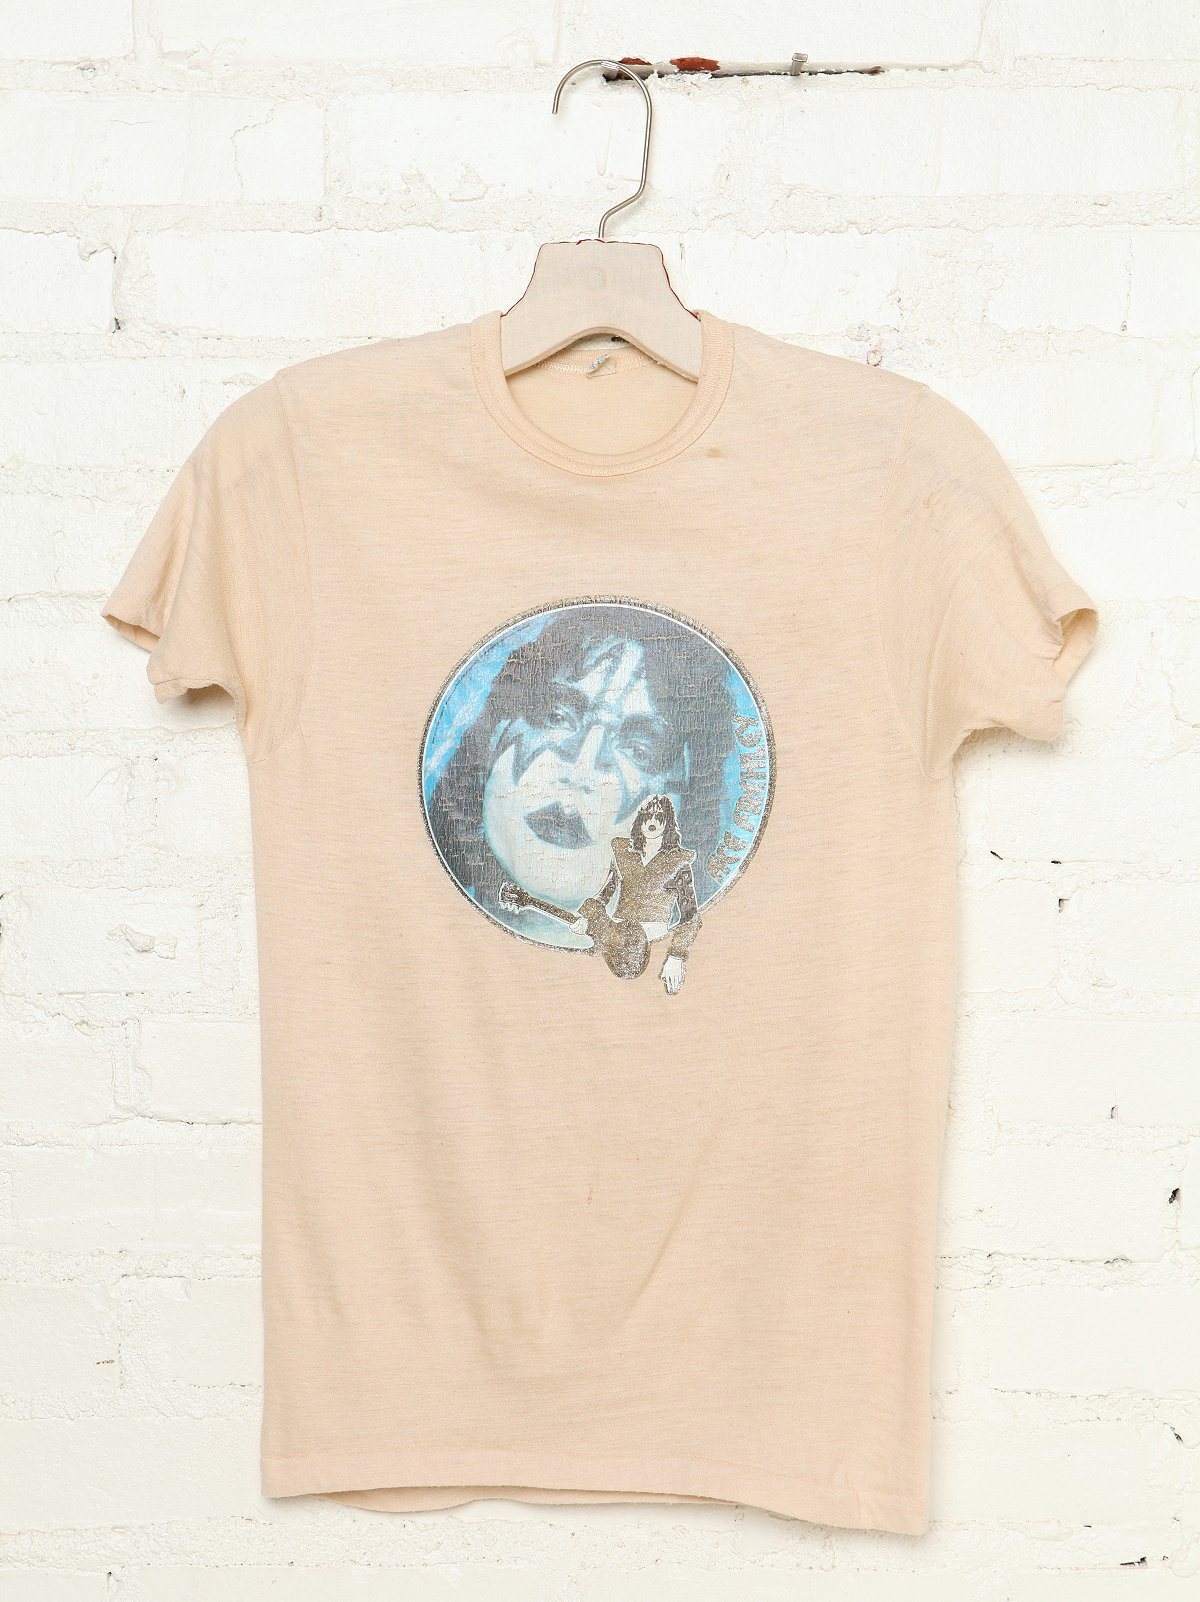 Vintage Ace Frehley Glitter Graphic Tee